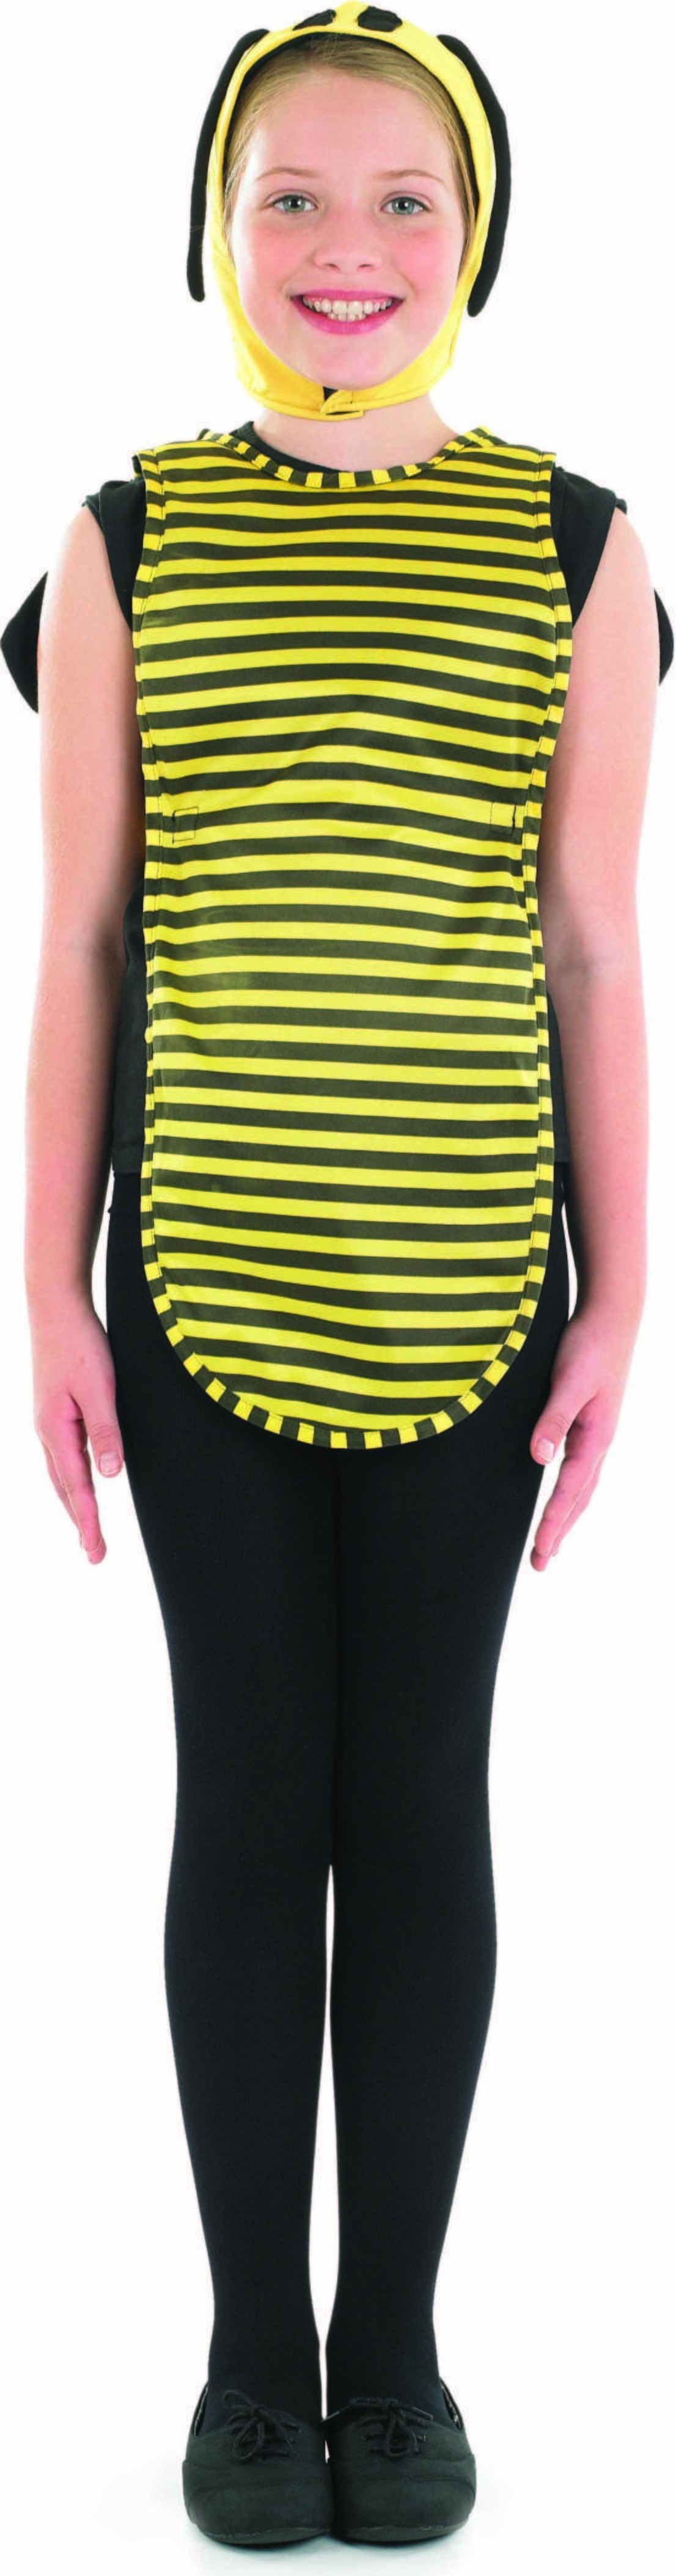 Girls Busy Bee Animal Outfit - (Black, Yellow)